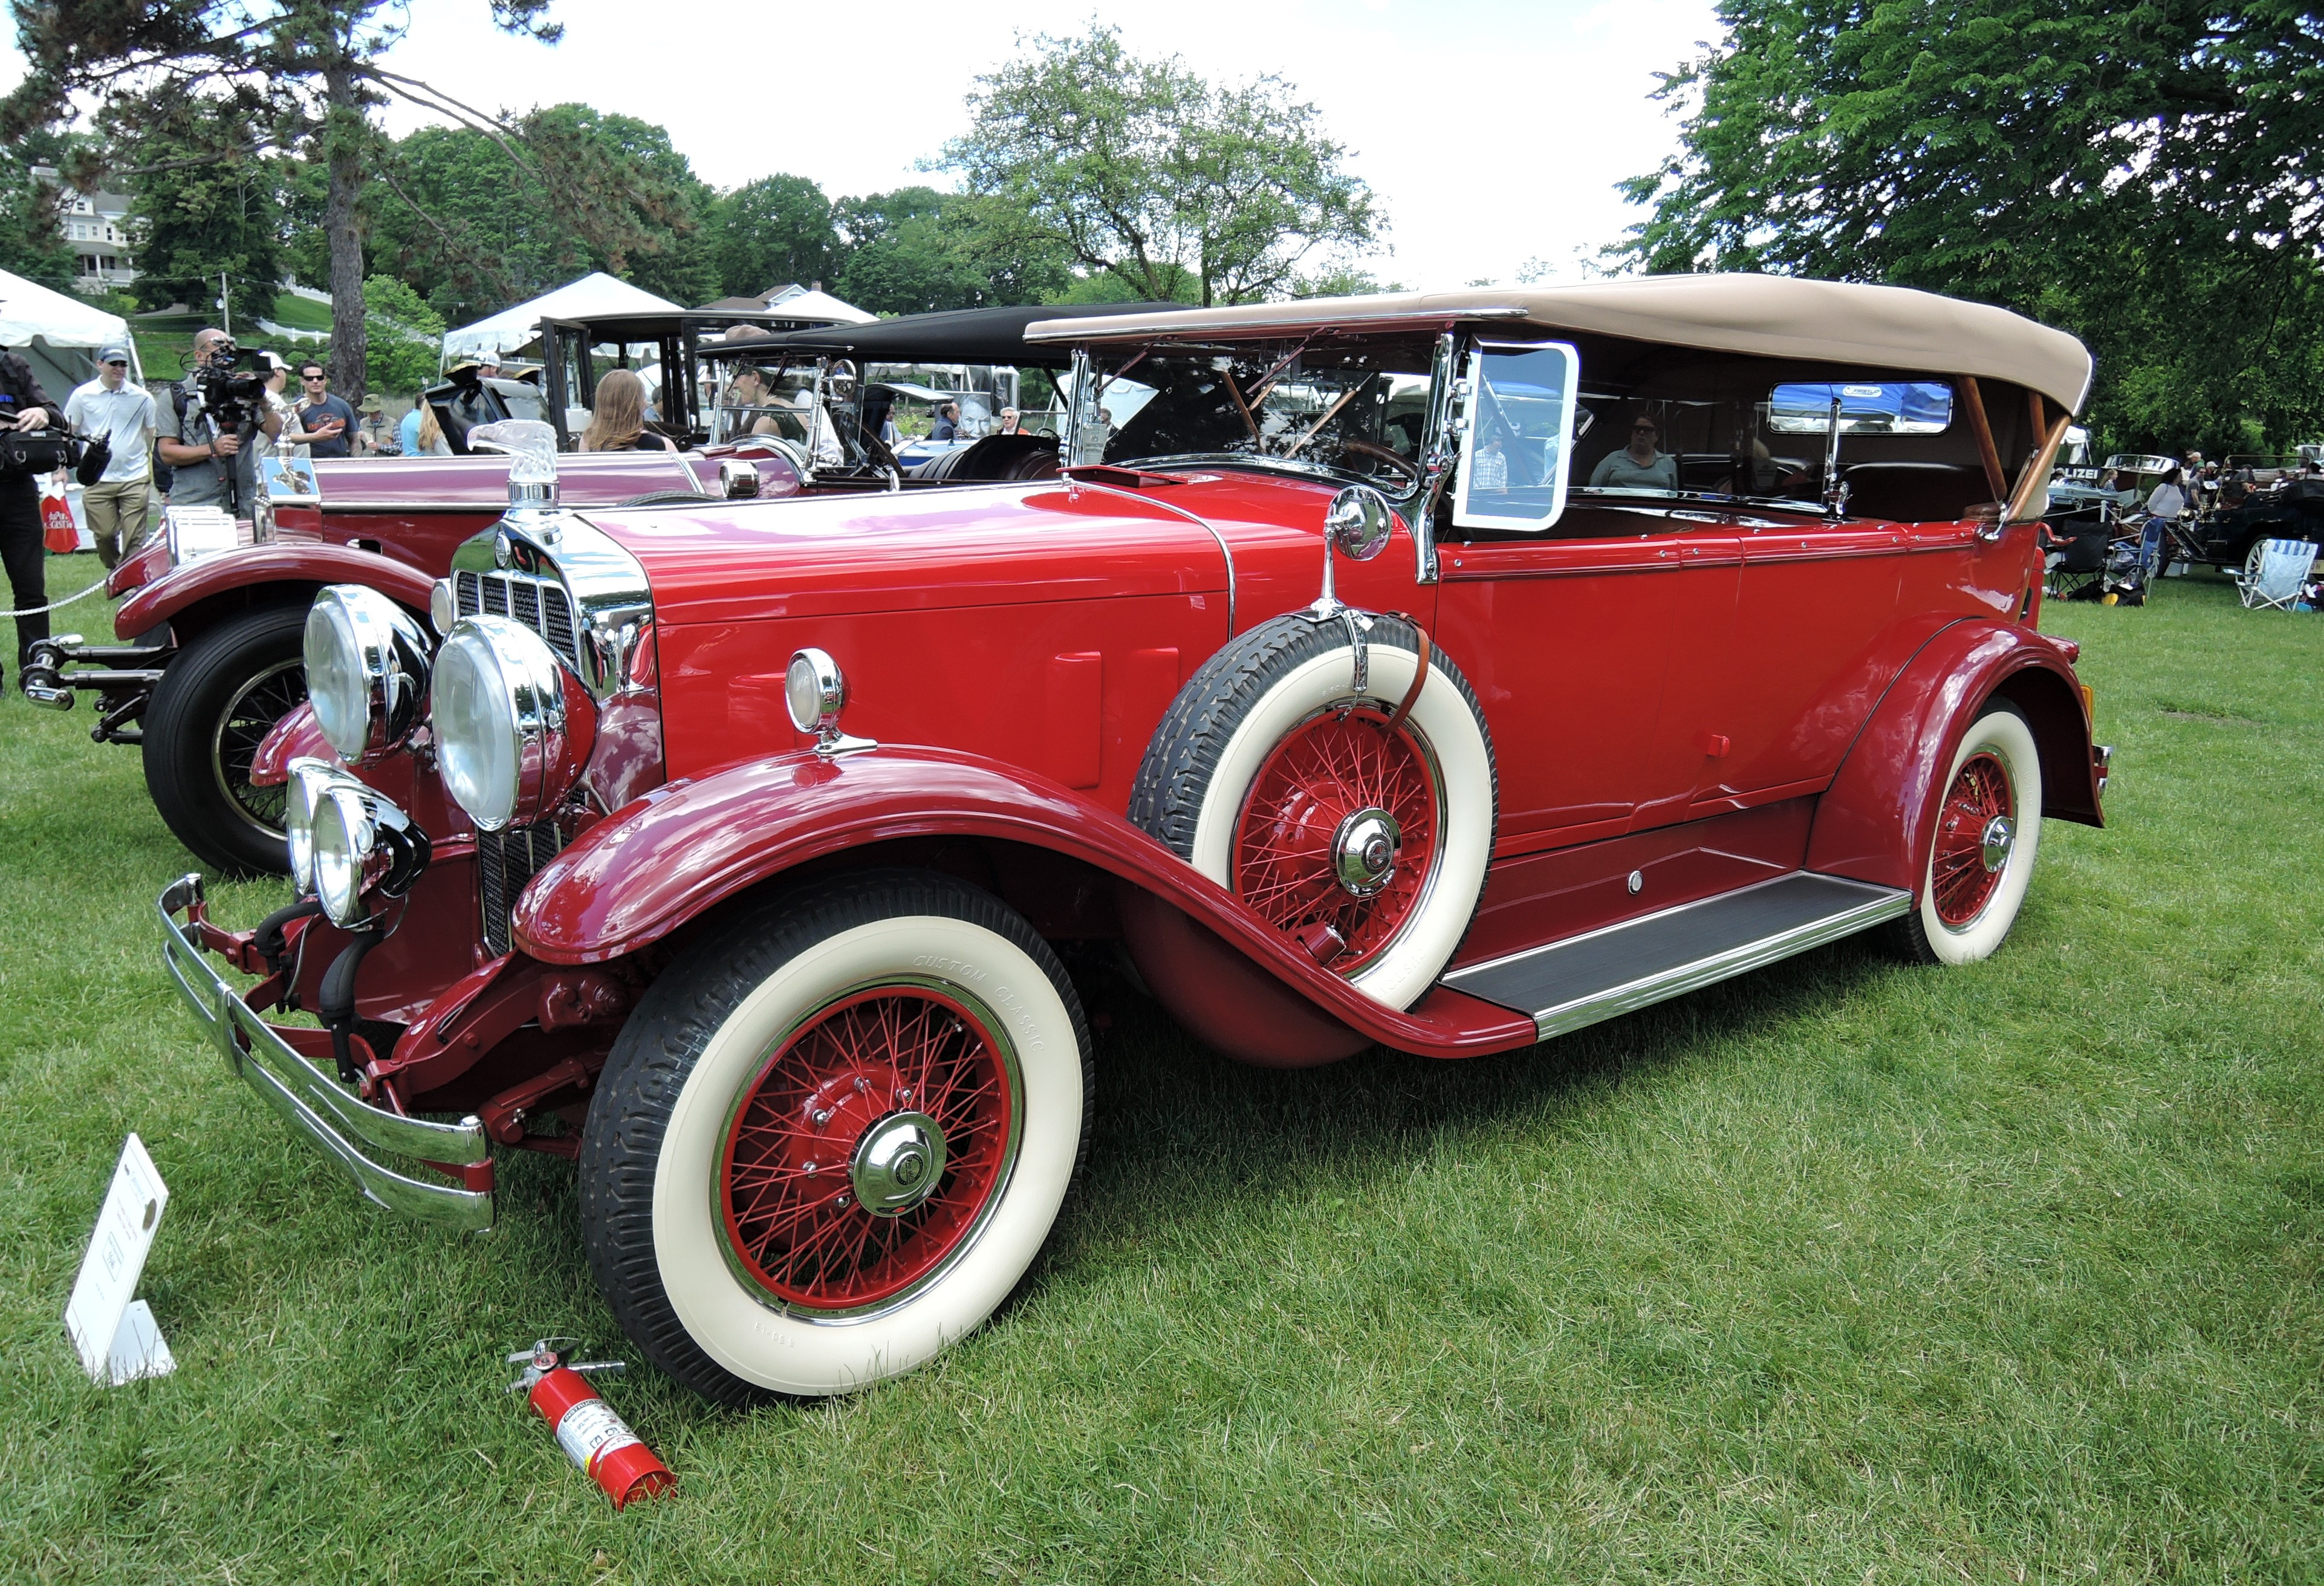 red 1929 Franklin 153 Sport Touring - Greenwich Concours d'Elegance 2017